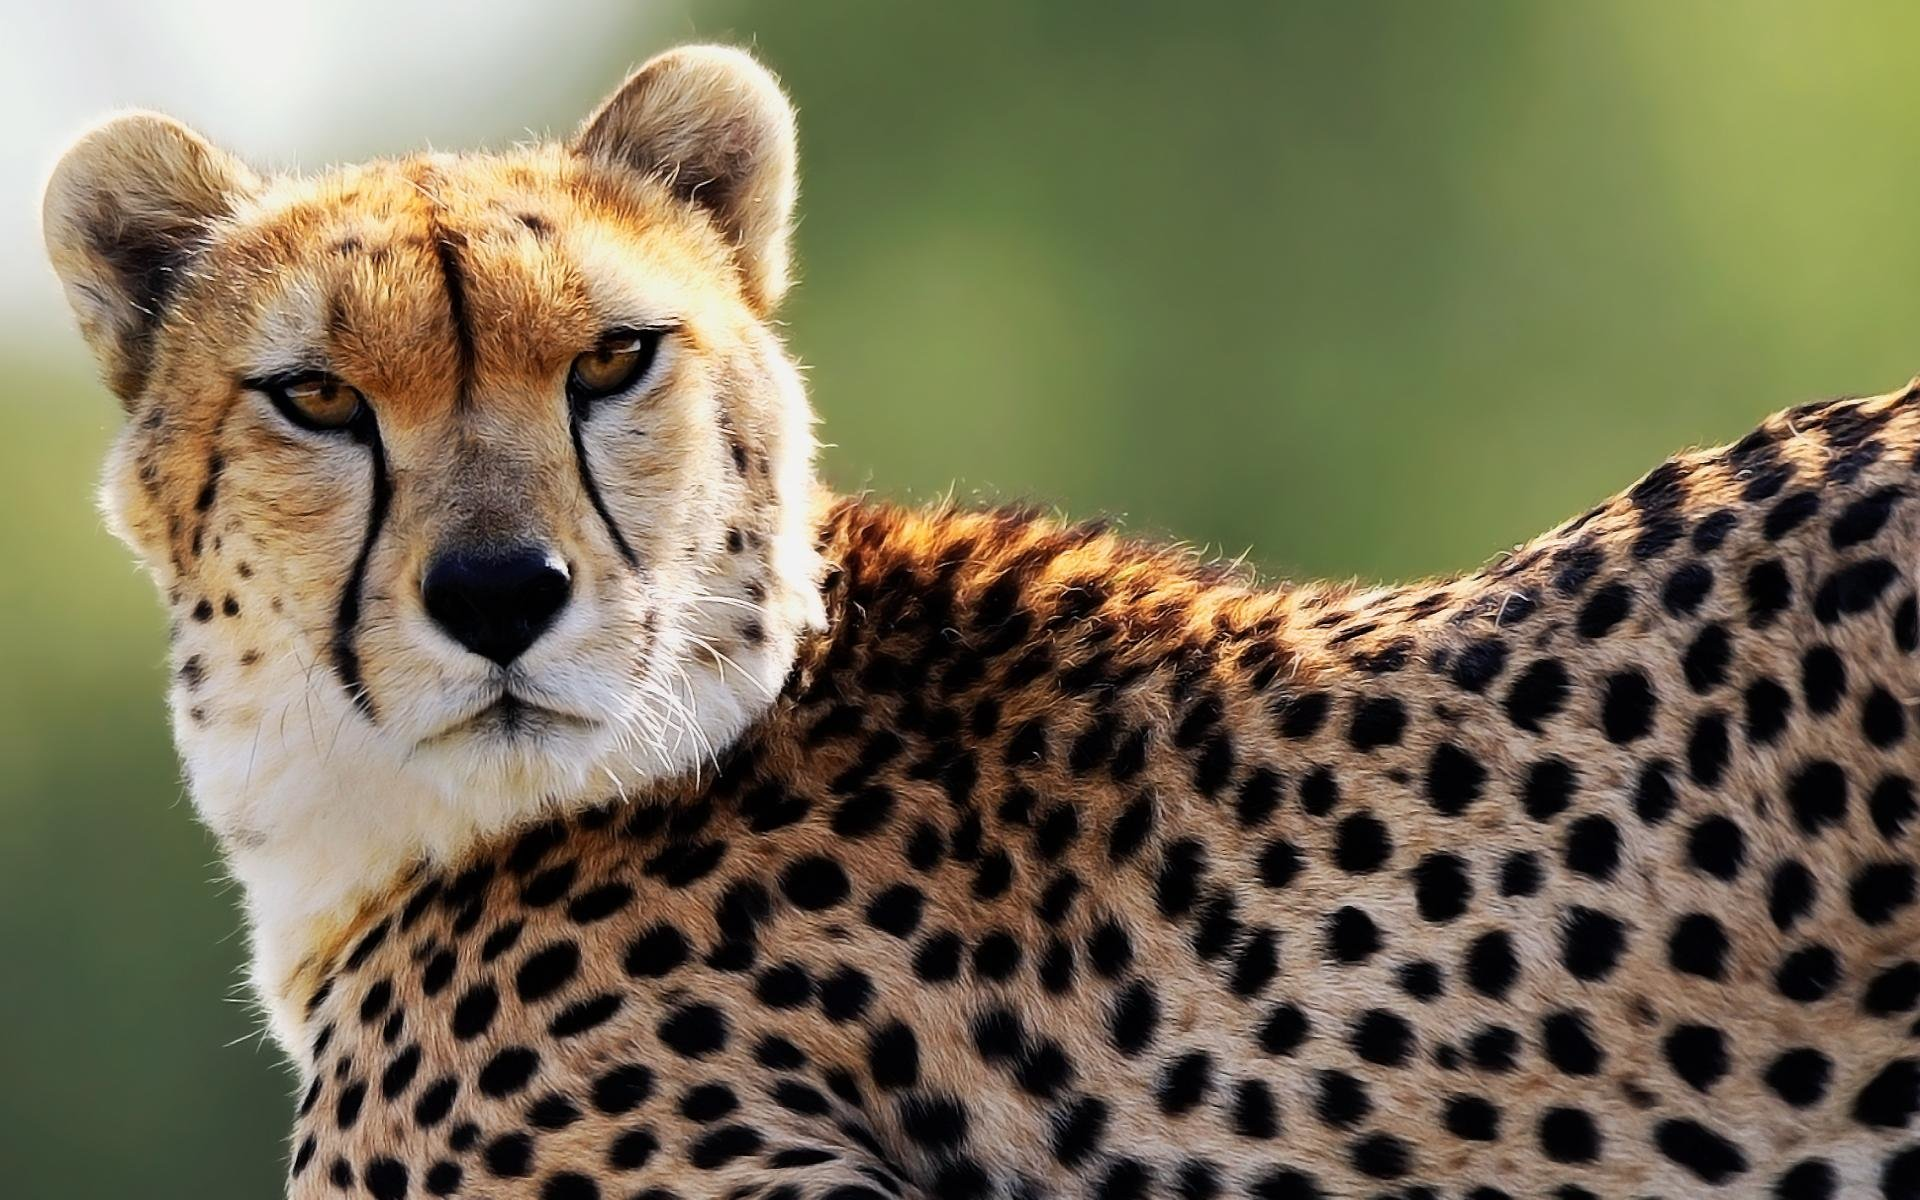 Download hd 1920x1200 Cheetah desktop background ID:161830 for free